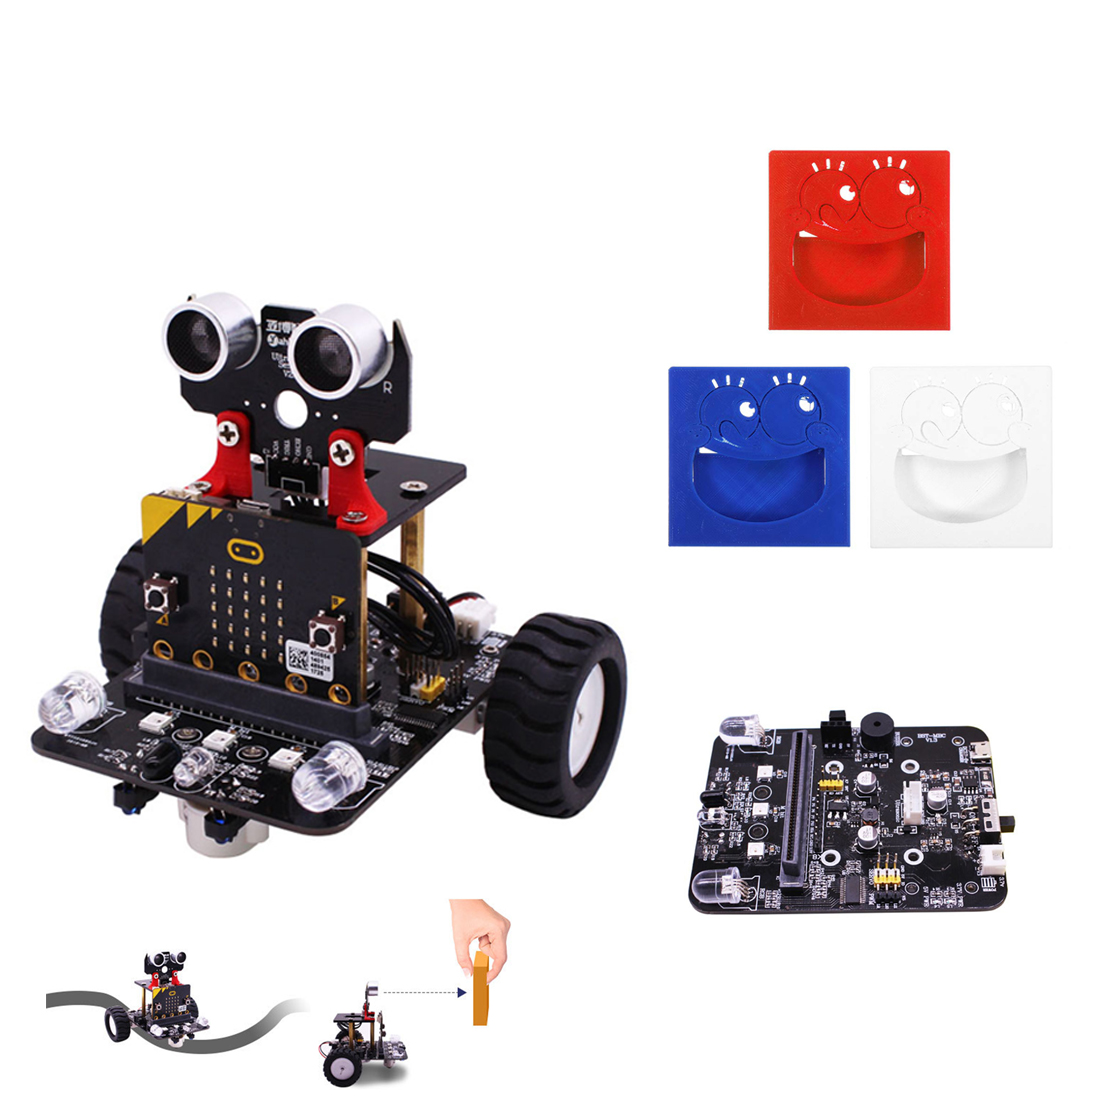 MODIKER Graphical Programmable High Tech Robot Car Toy Tracking Module Expansion Board Silicone Protective Case For Micro:bit